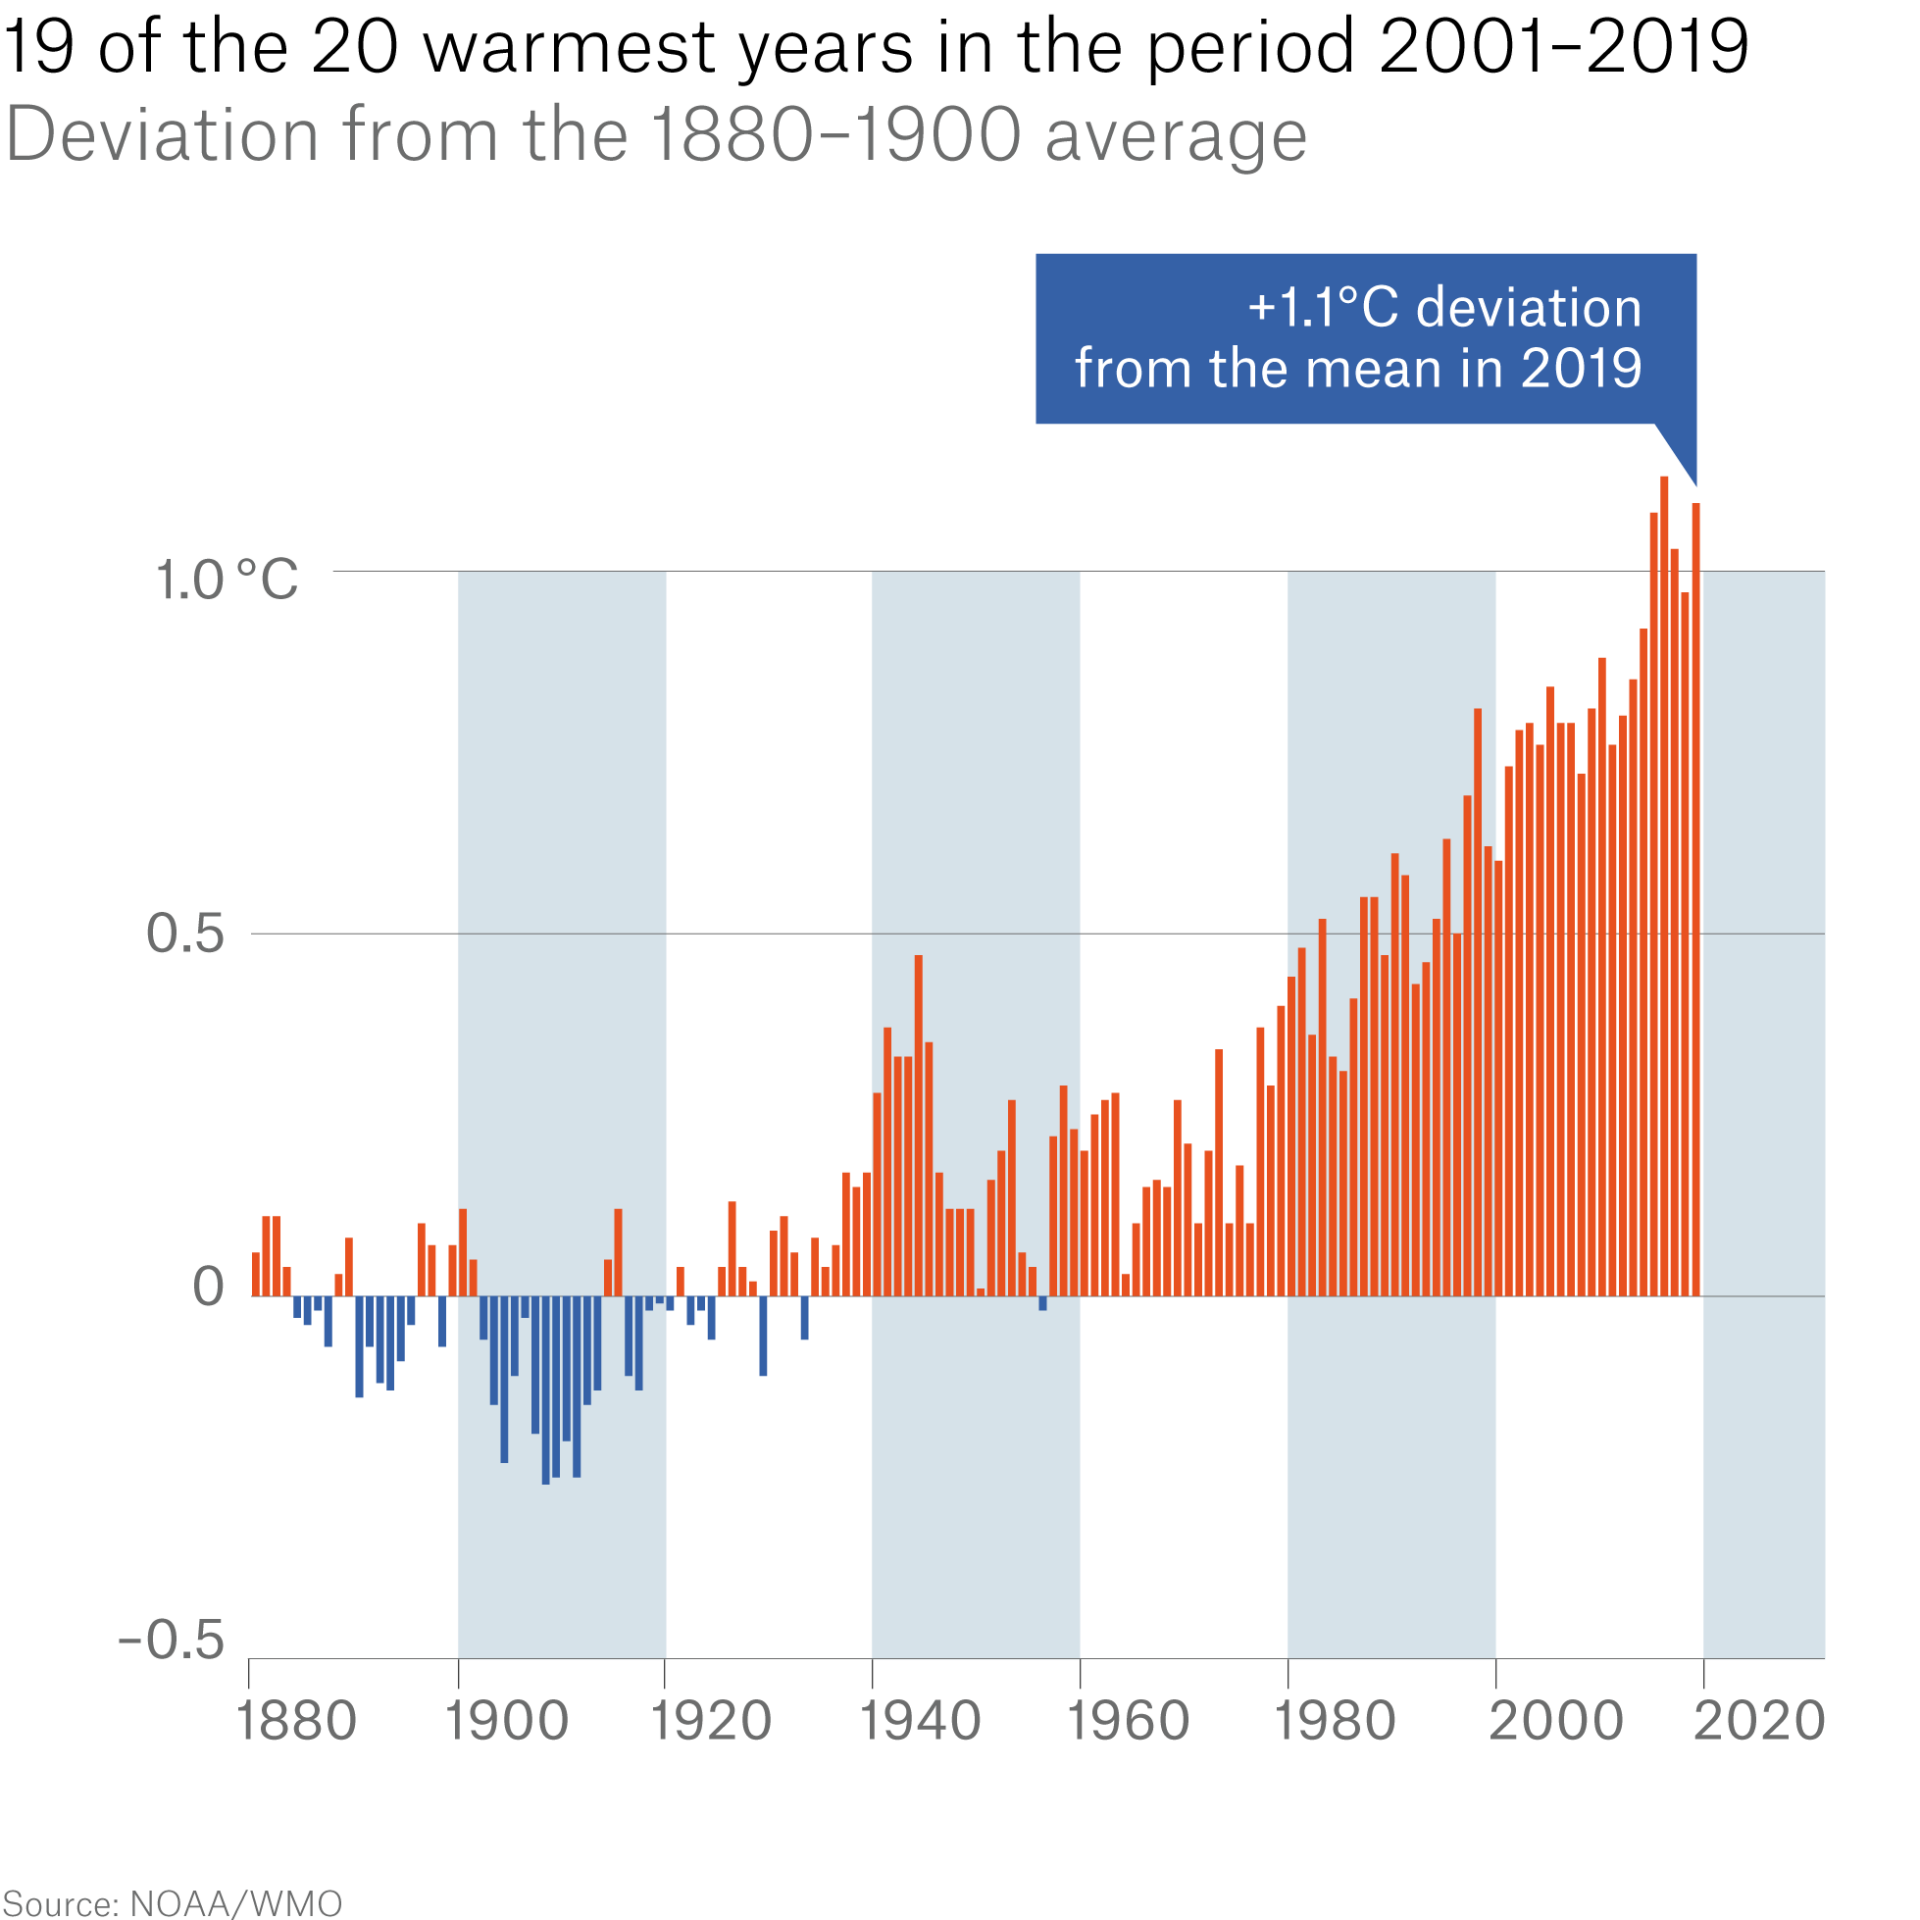 All 19 years since 2001 rank among the 20 warmest since measurements began.